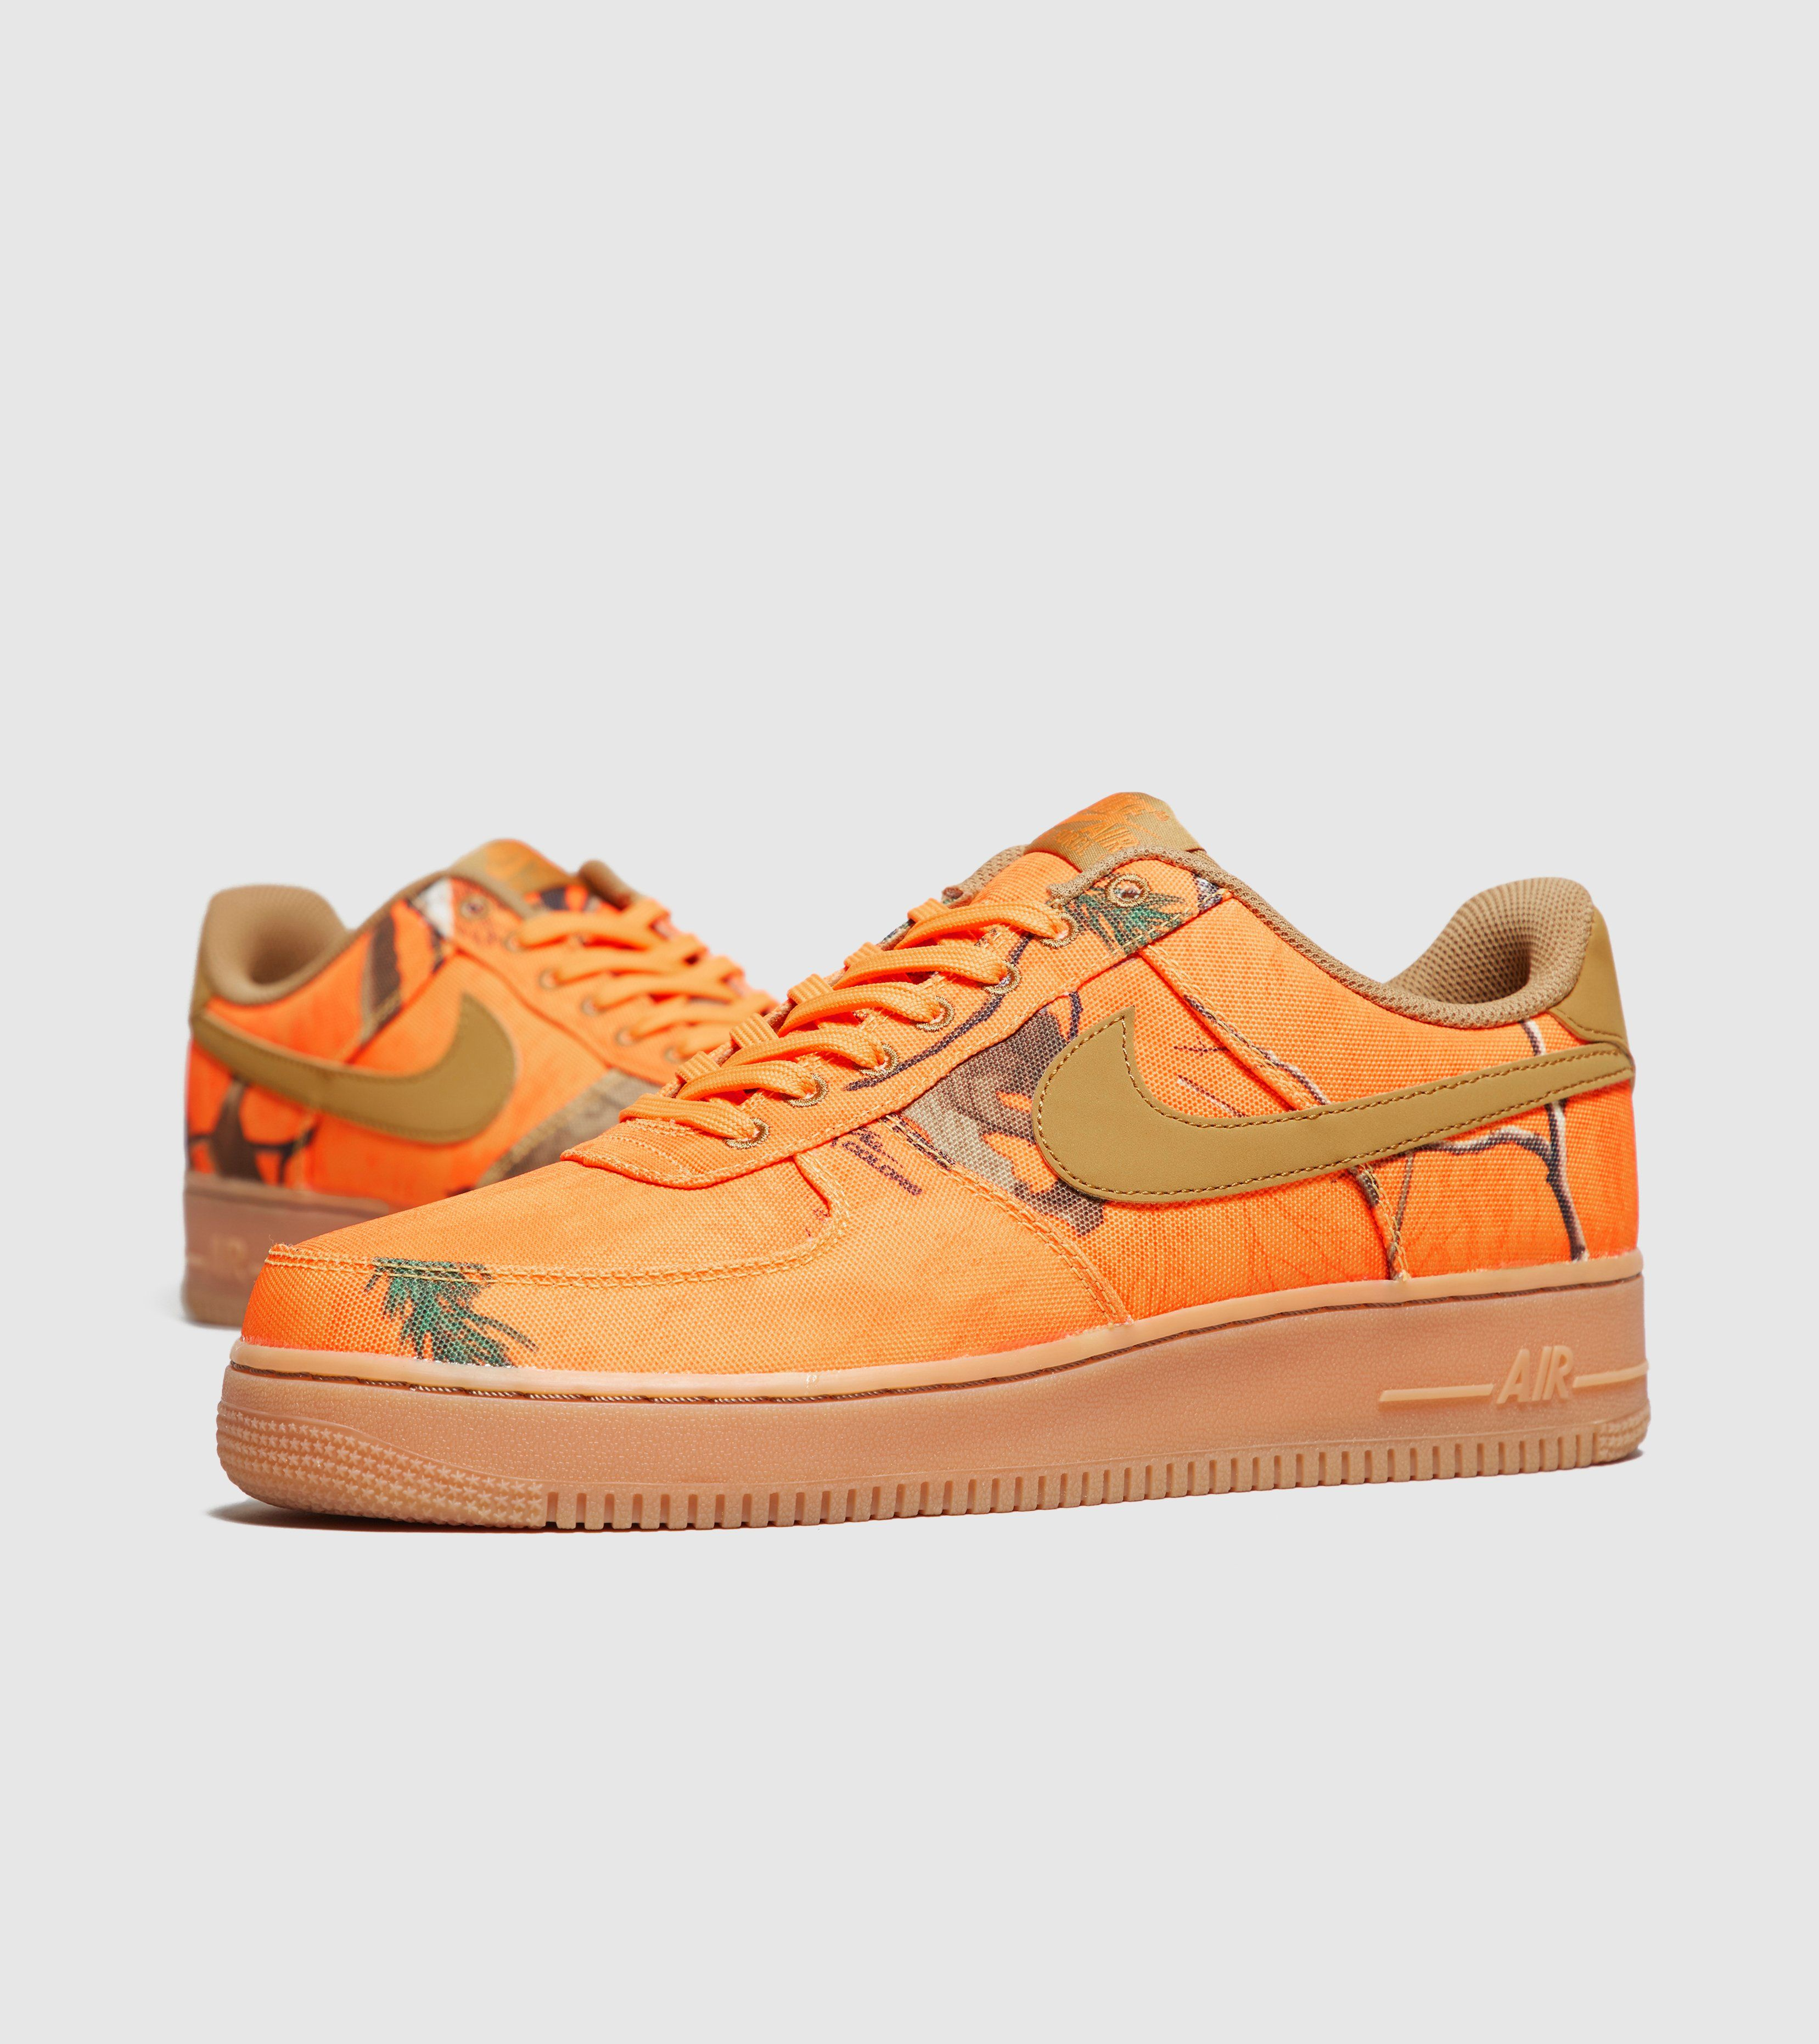 Nike Air Force 1 Low 'Realtree' Camo Pack